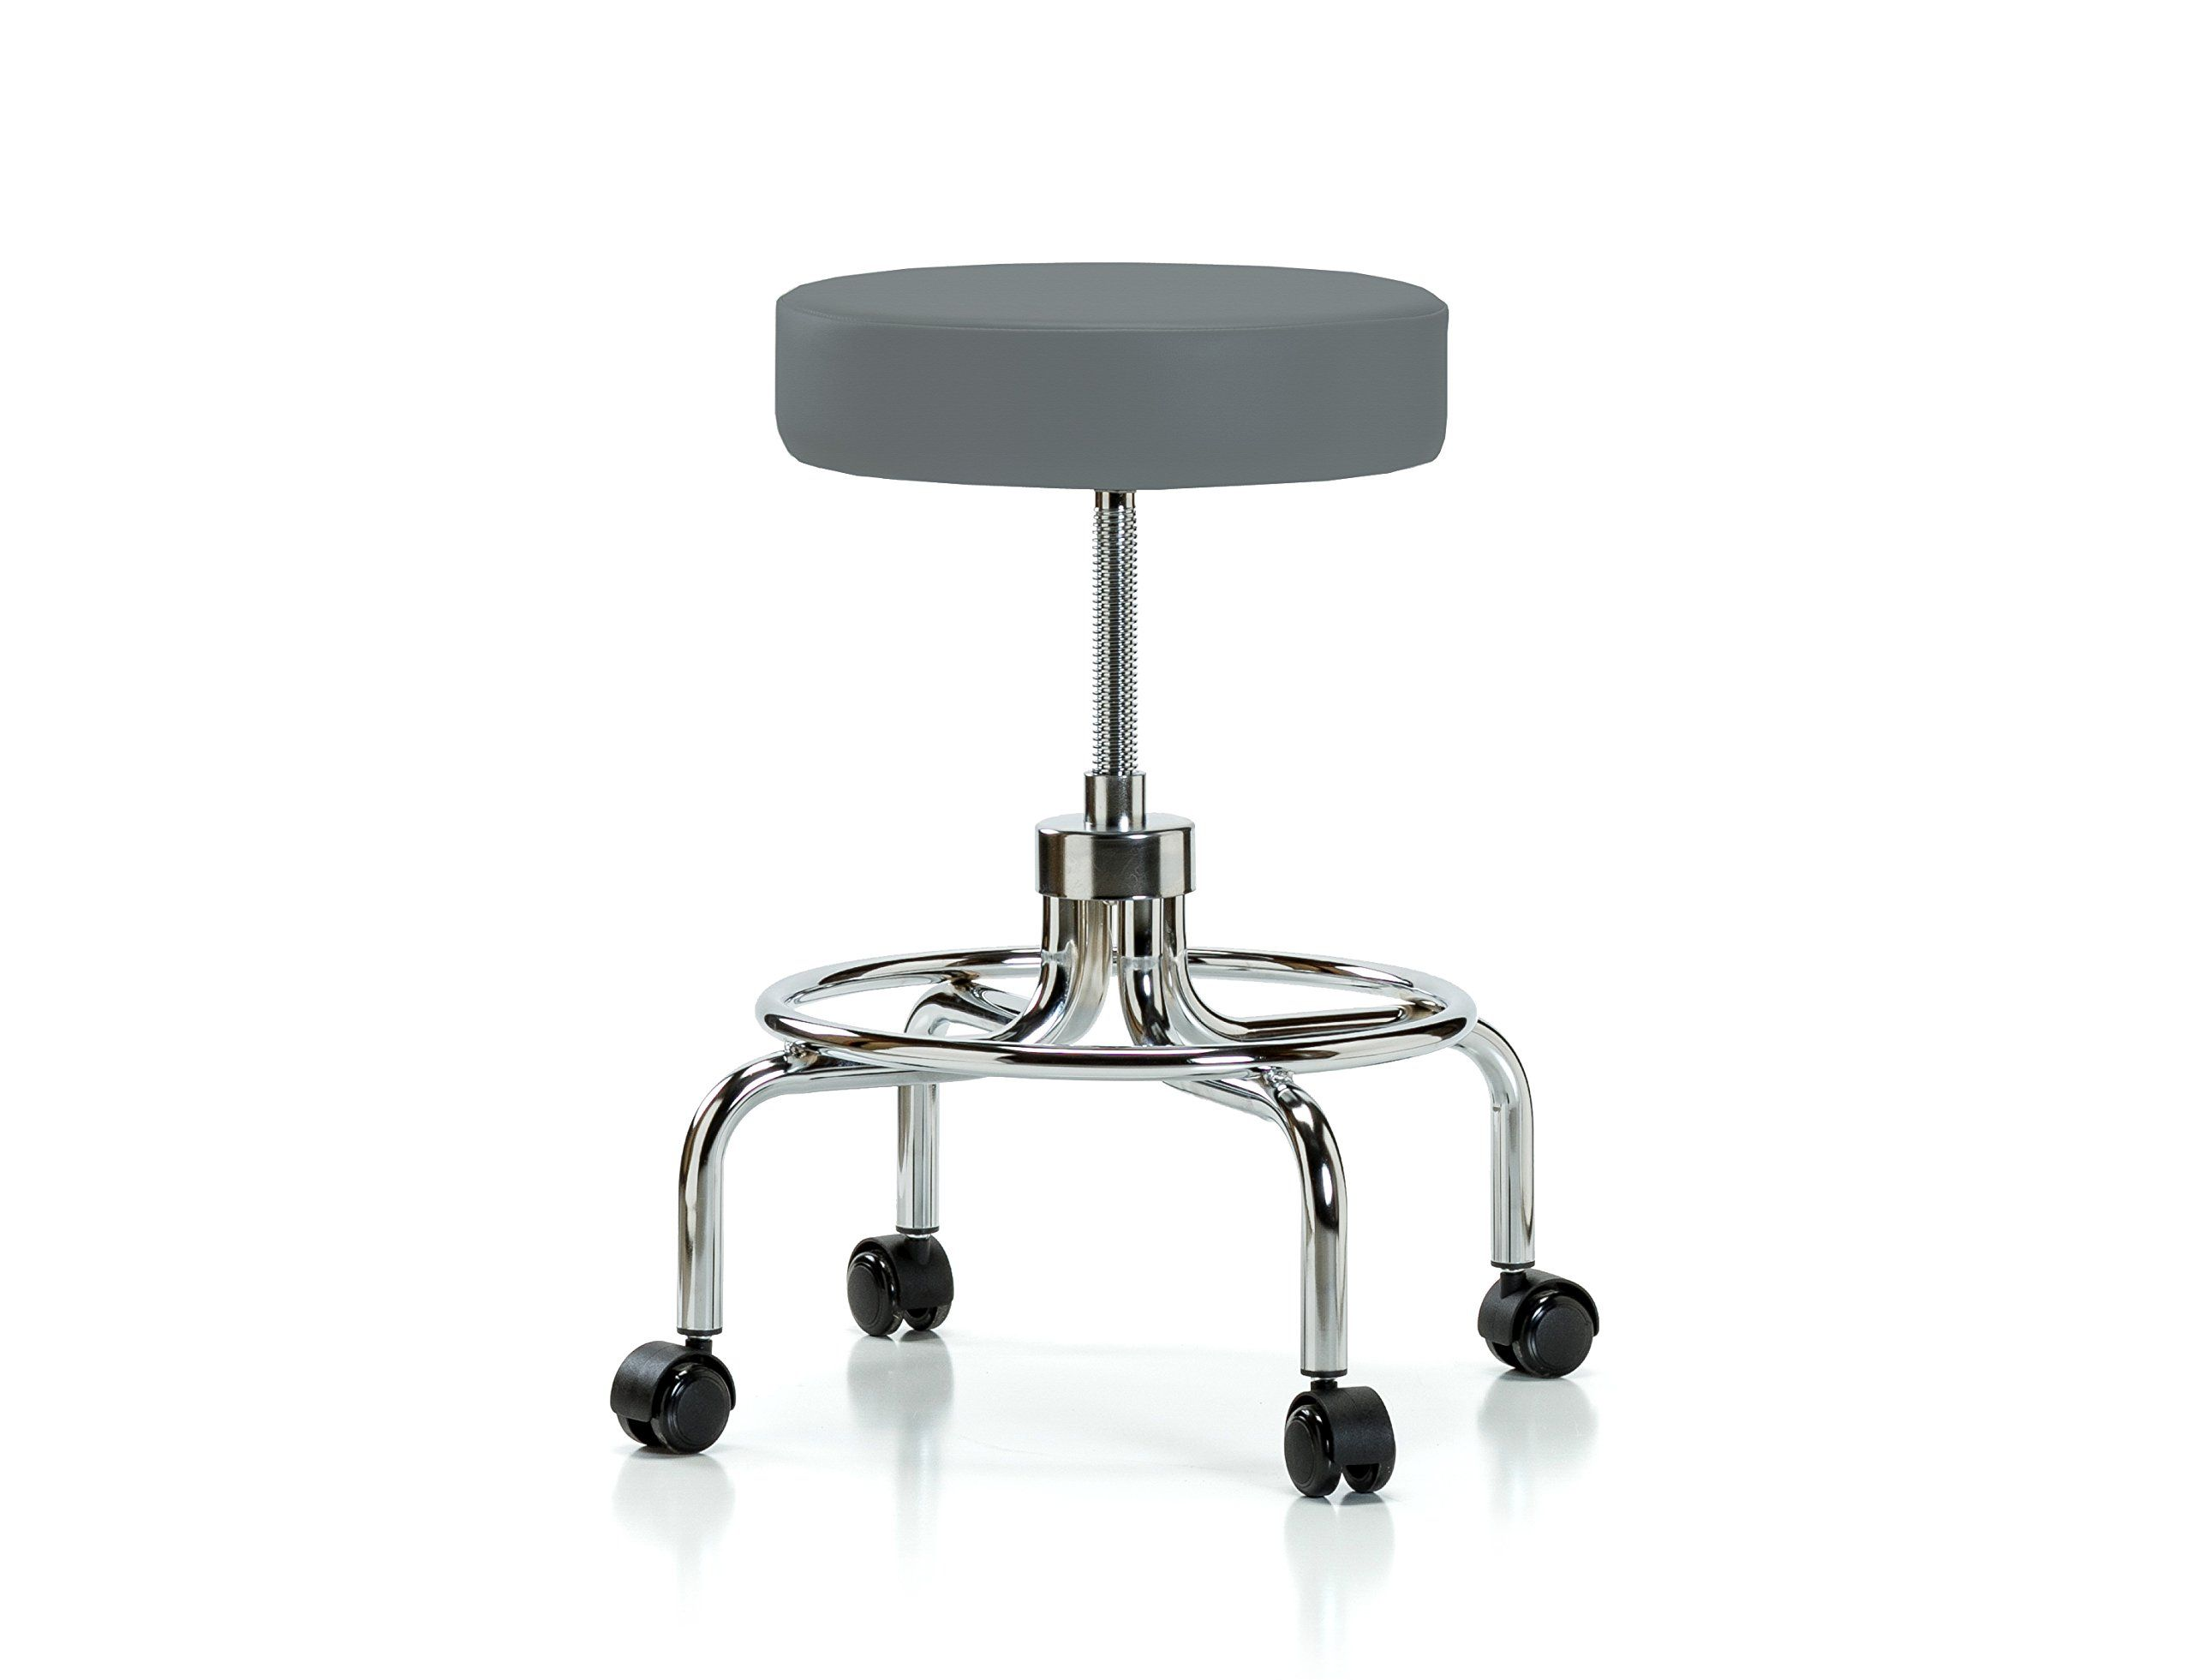 stoli bar industri stuff stool garage ln barov pin ka pipe